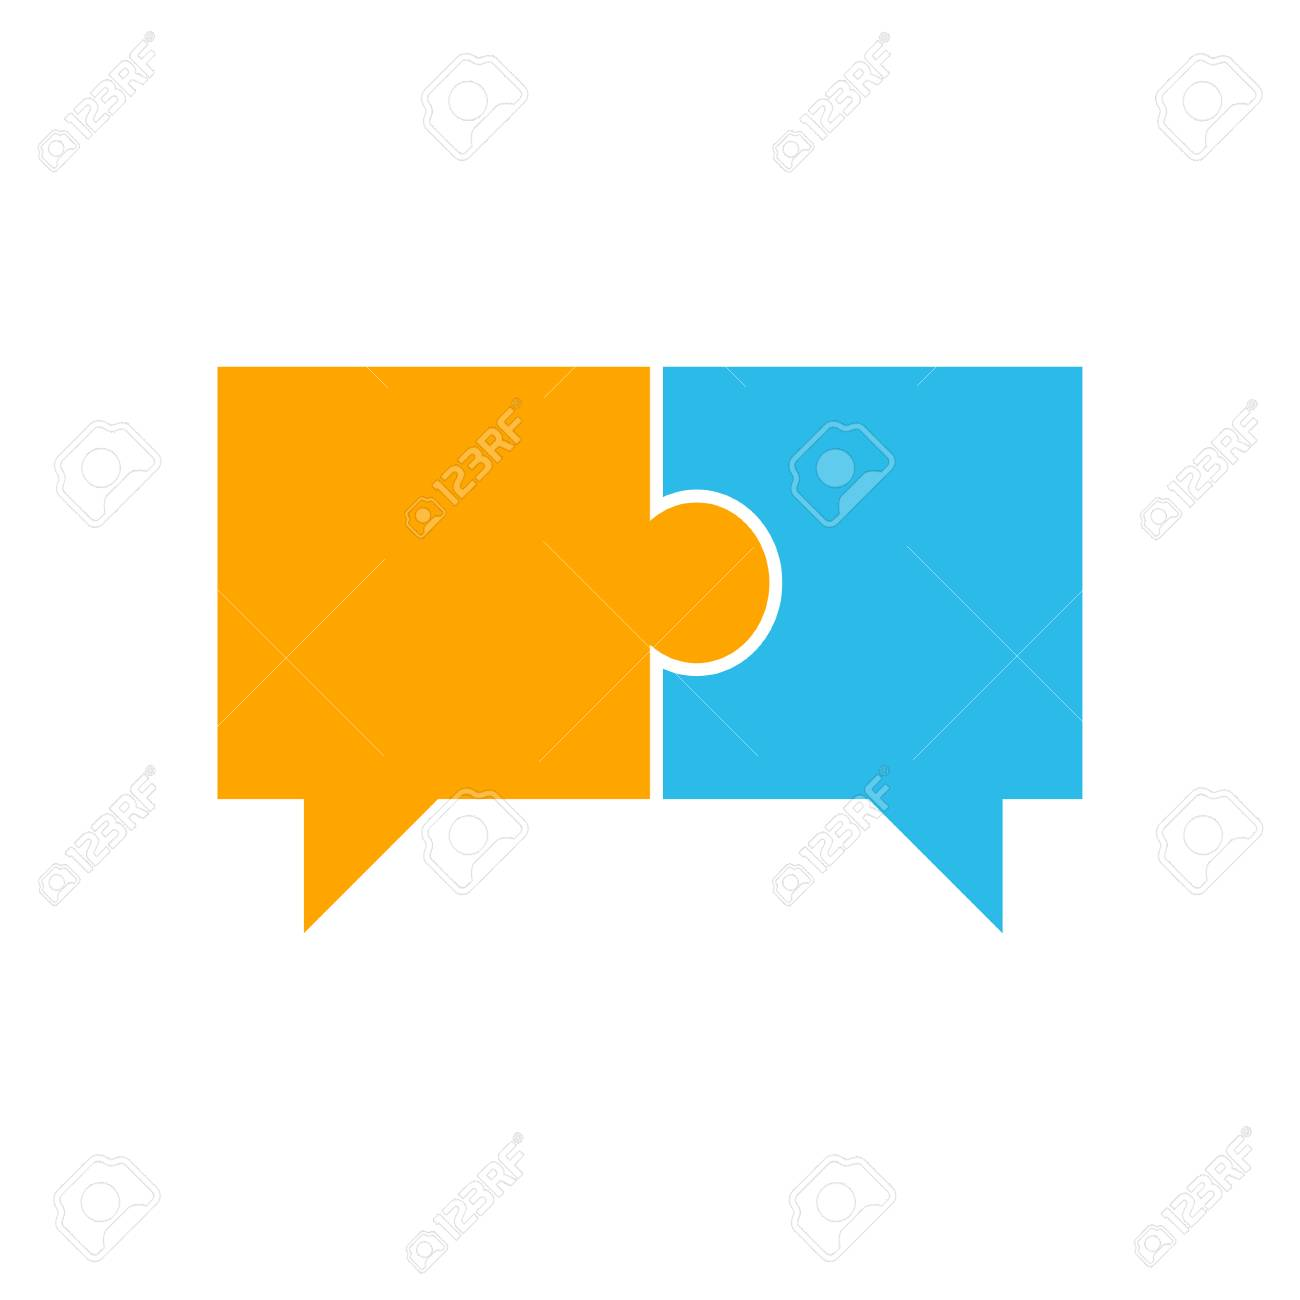 Speech Bubble In Puzzle. Two pieces of connected puzzle speech bubble. vector illustration - 101685228